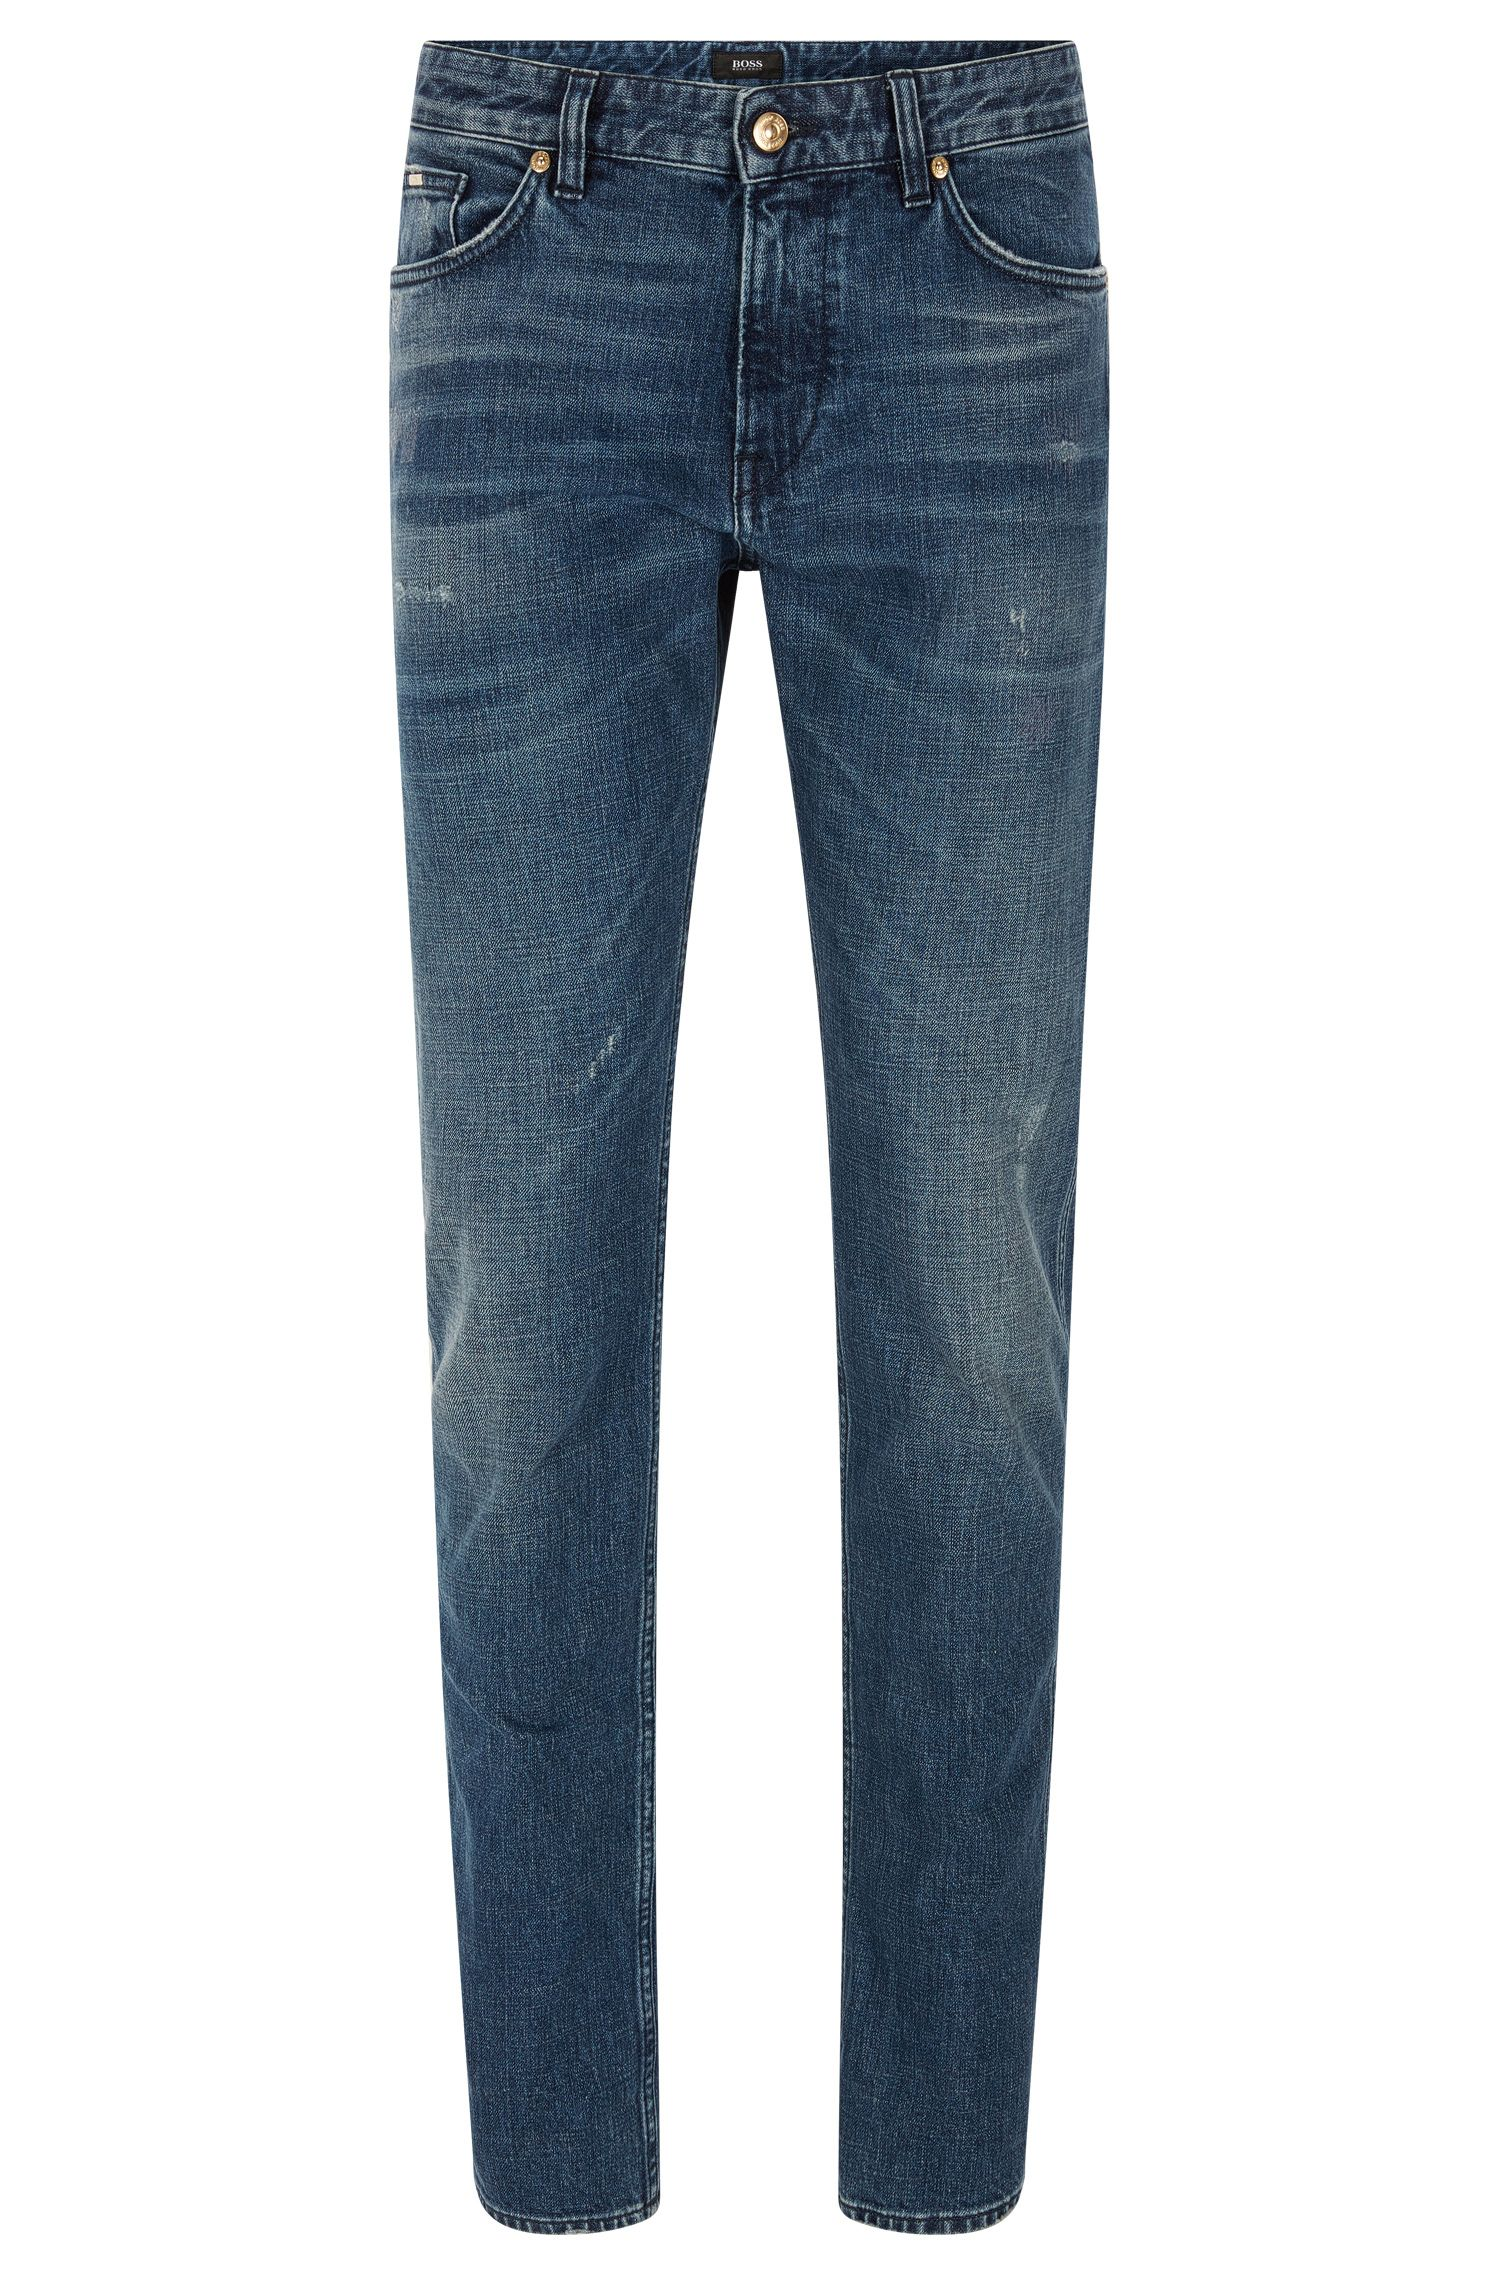 Slim-Fit Jeans aus Stretch-Denim in Vintage-Optik